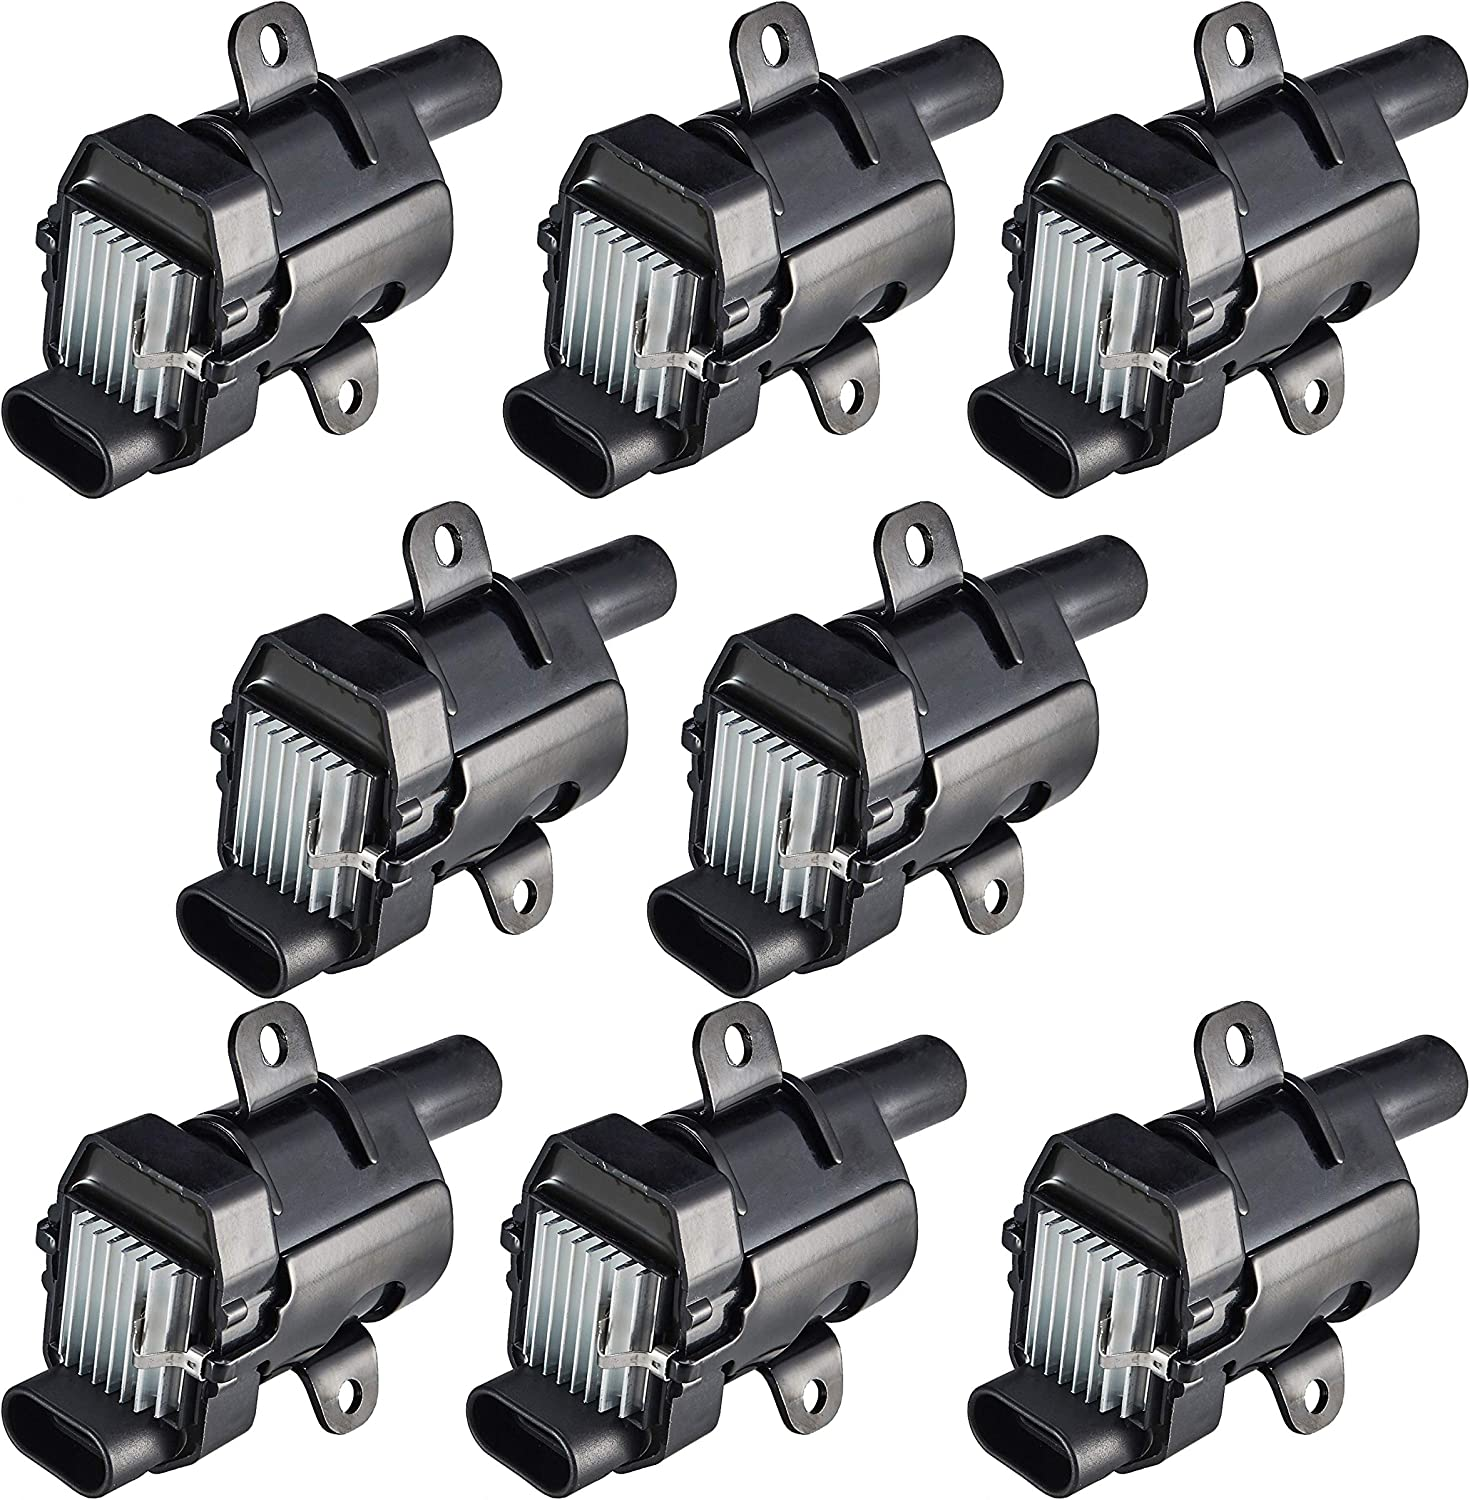 Scitoo Round Ignition Coils Pack of 8 fit Chevrolet Buick Cadillac GMC Hummer UF262 NEW